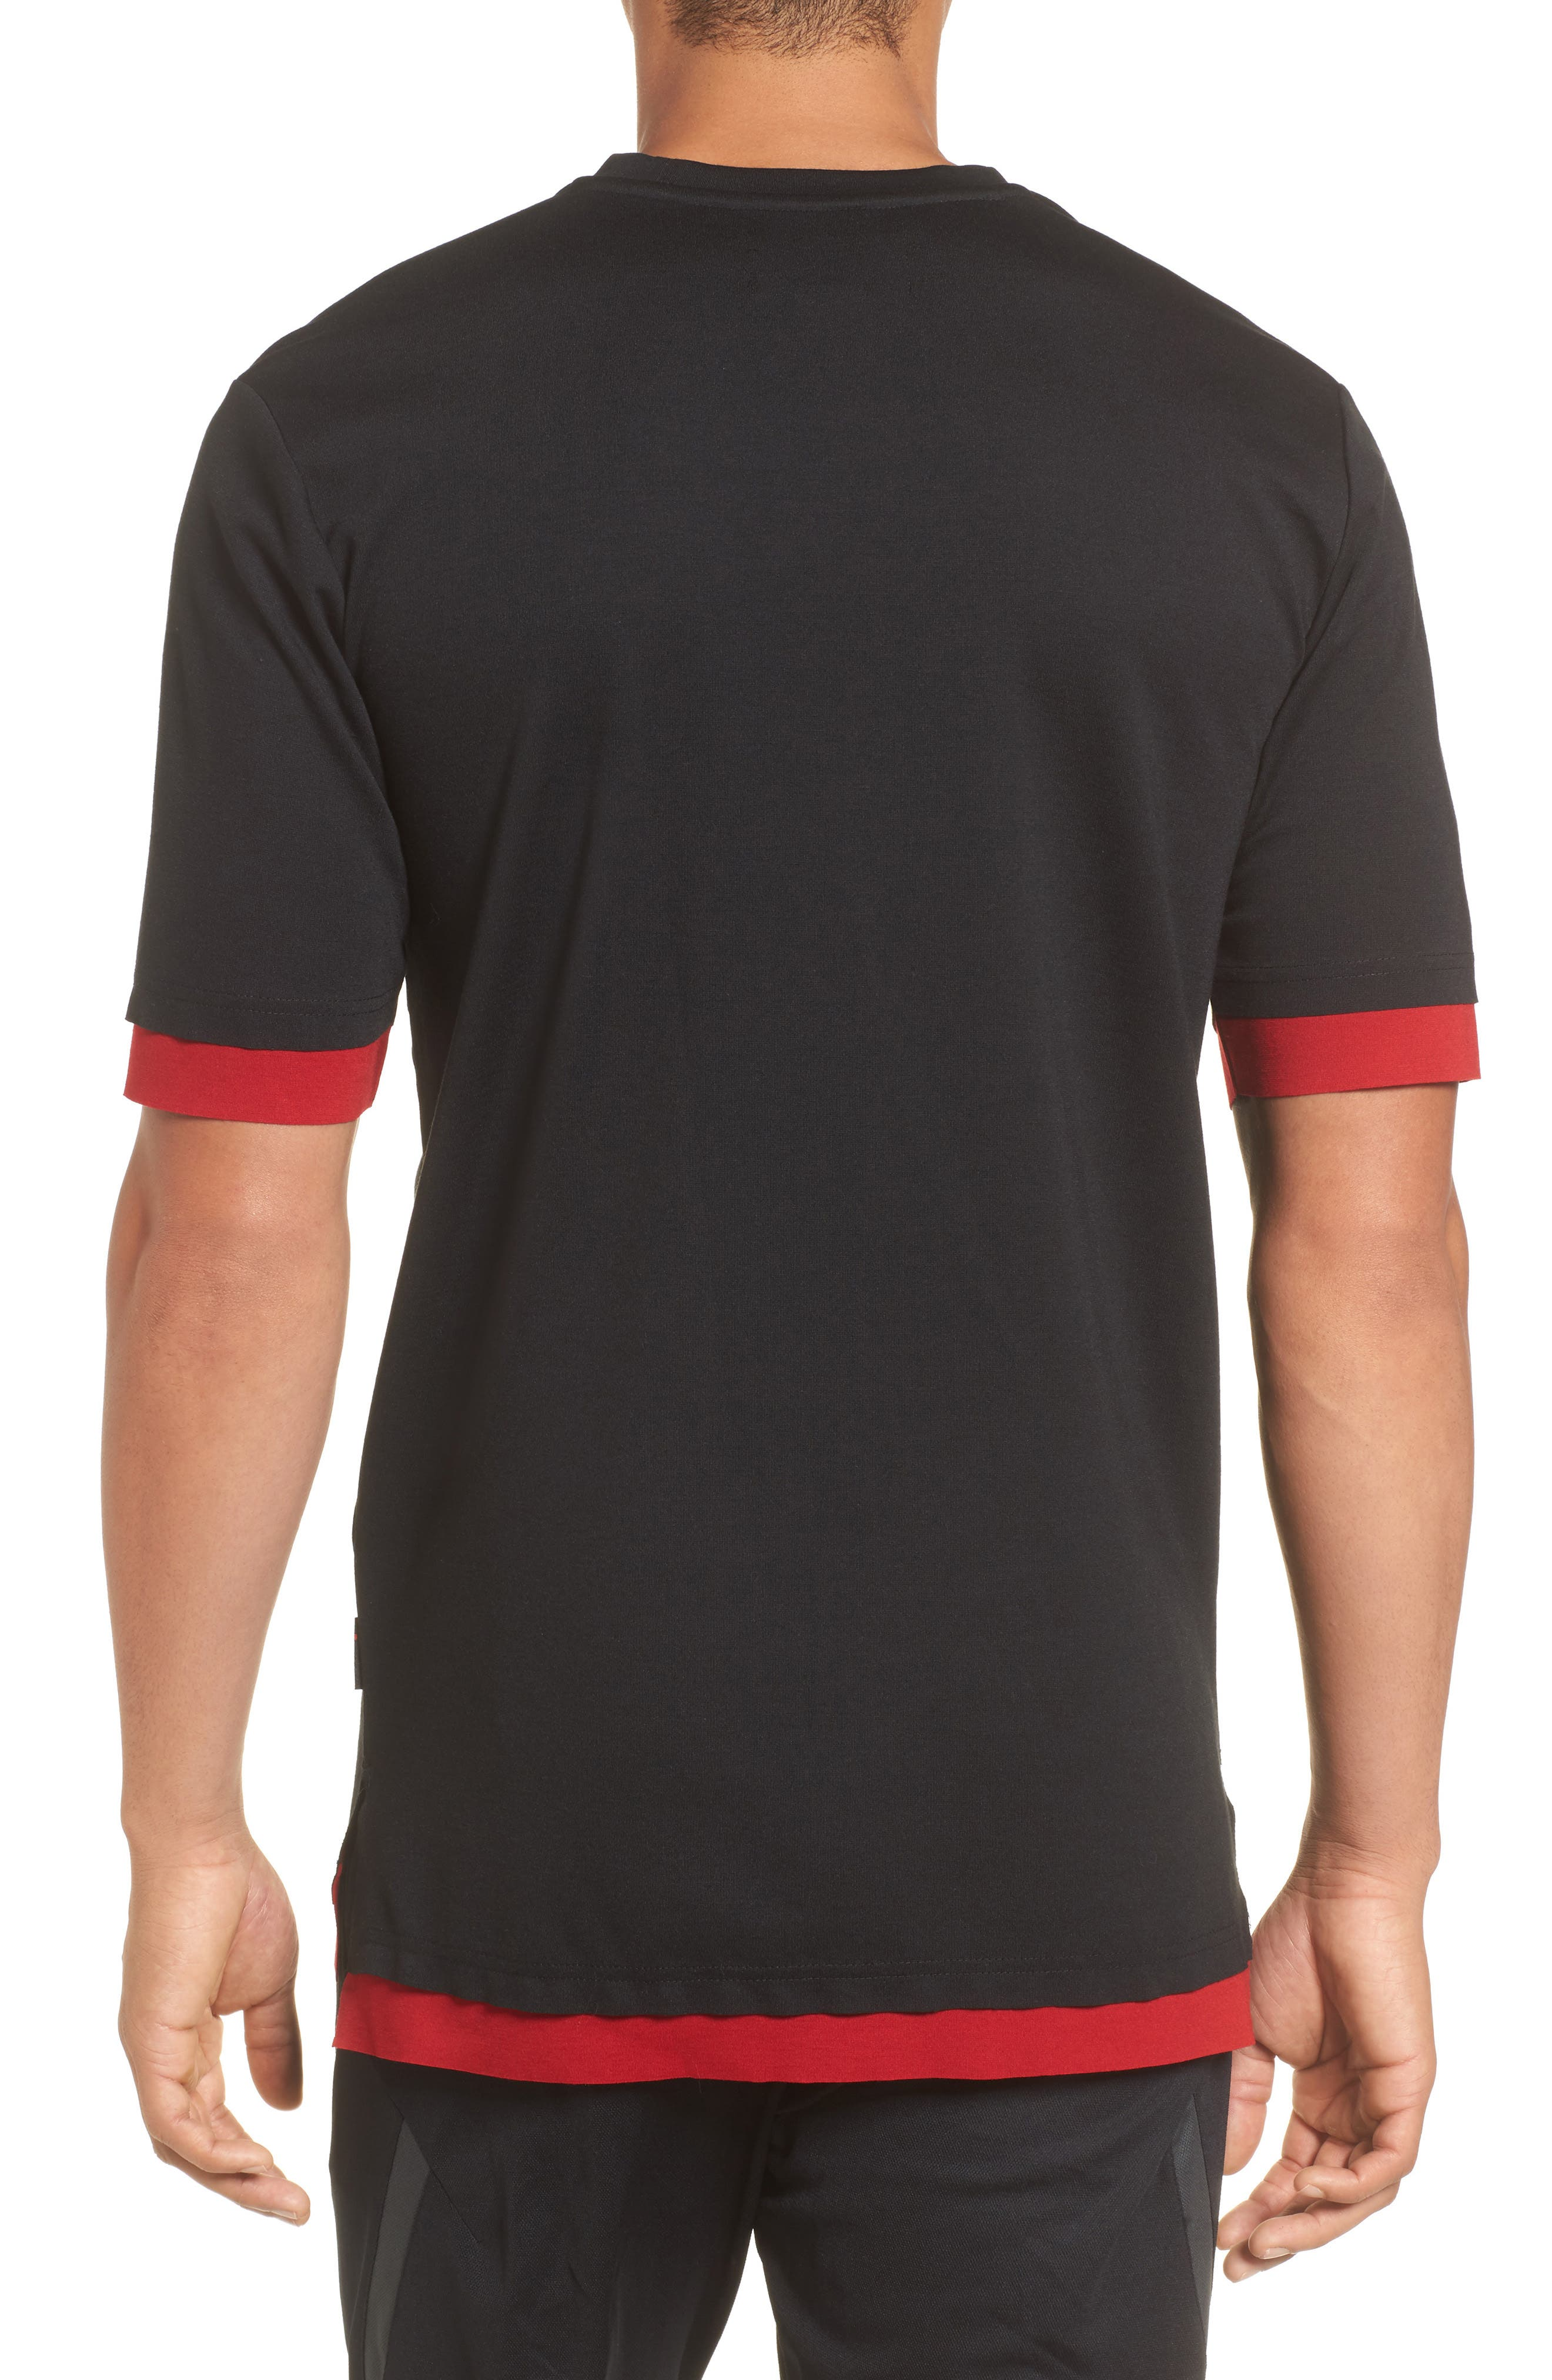 Sportswear Tech T-Shirt,                             Alternate thumbnail 2, color,                             BLACK/ GYM RED/ ANTHRACITE